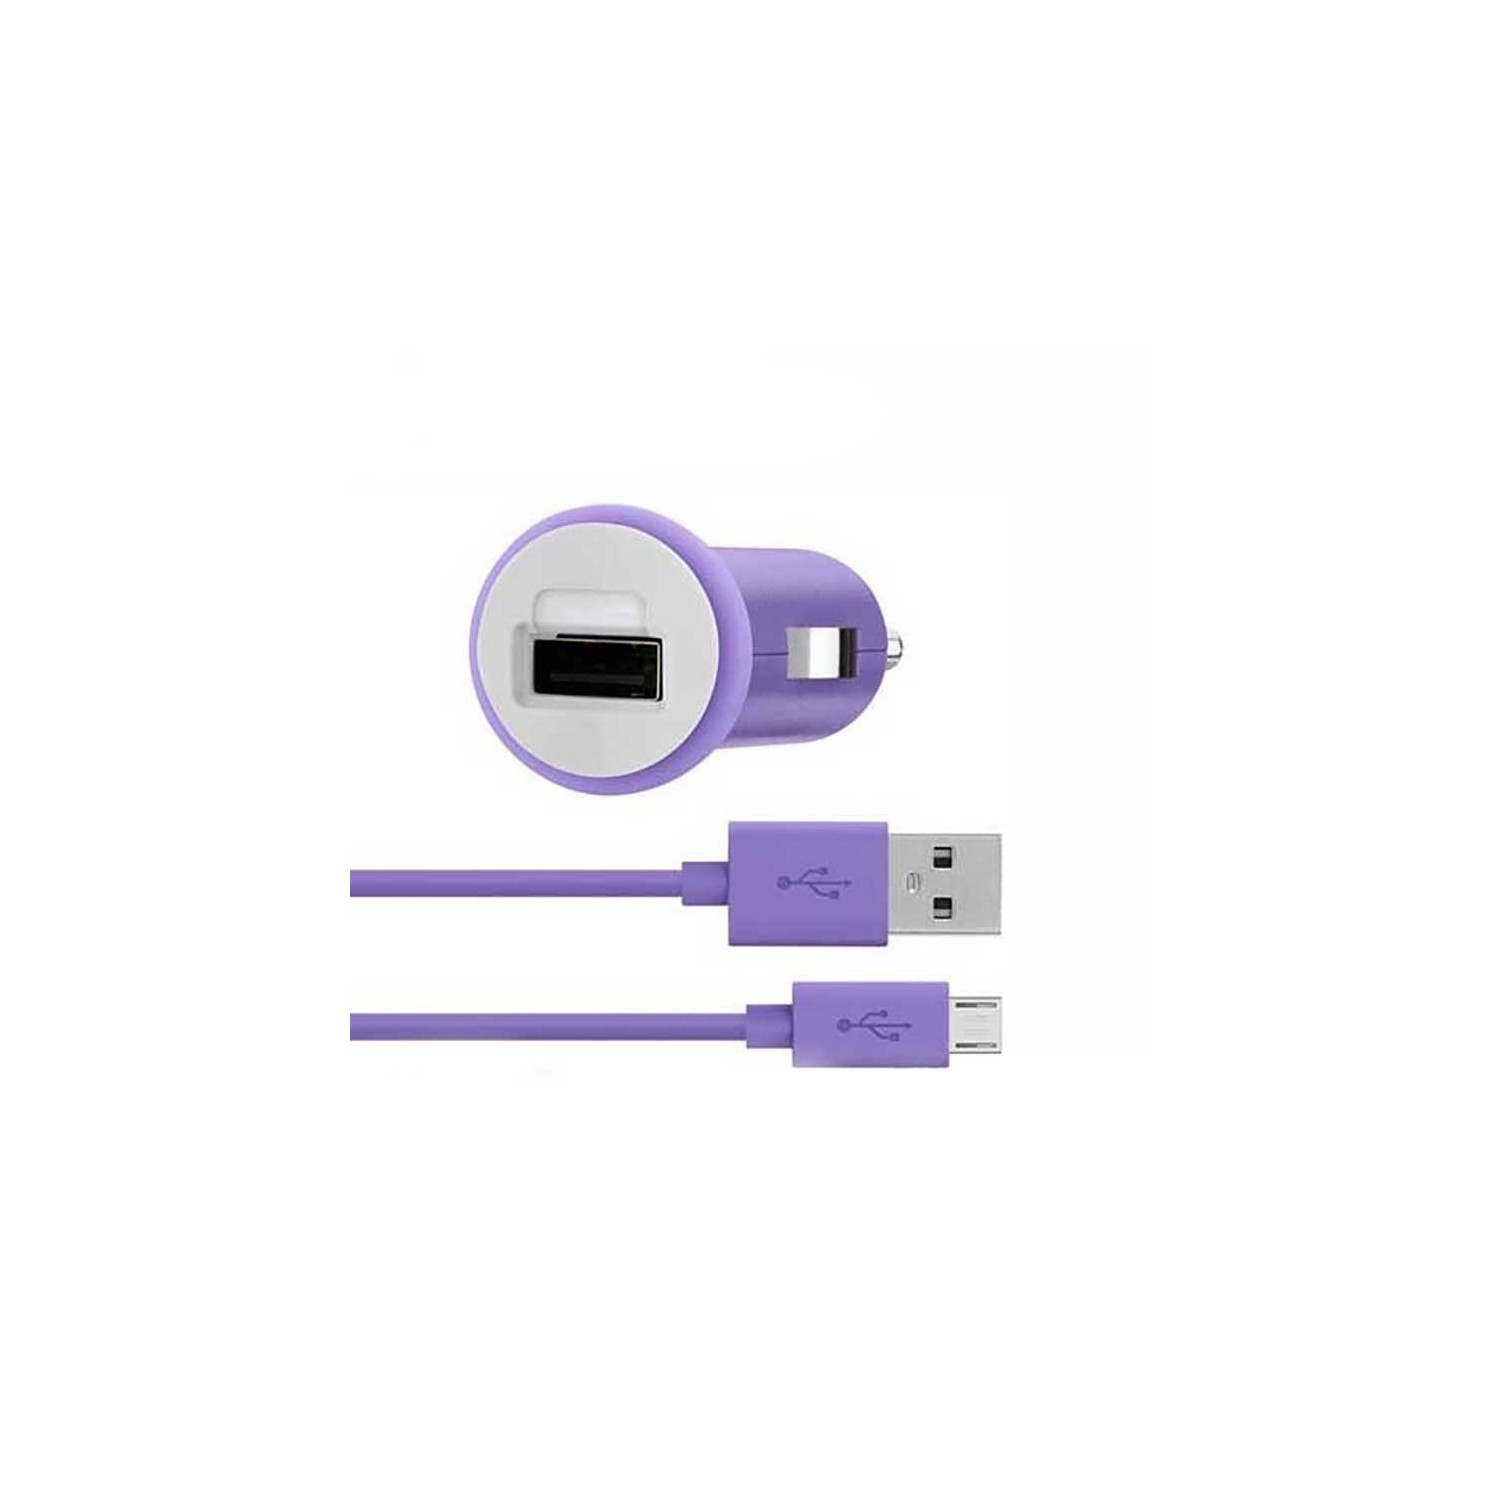 Plug In Charger - Micro USB 2.1 Universal